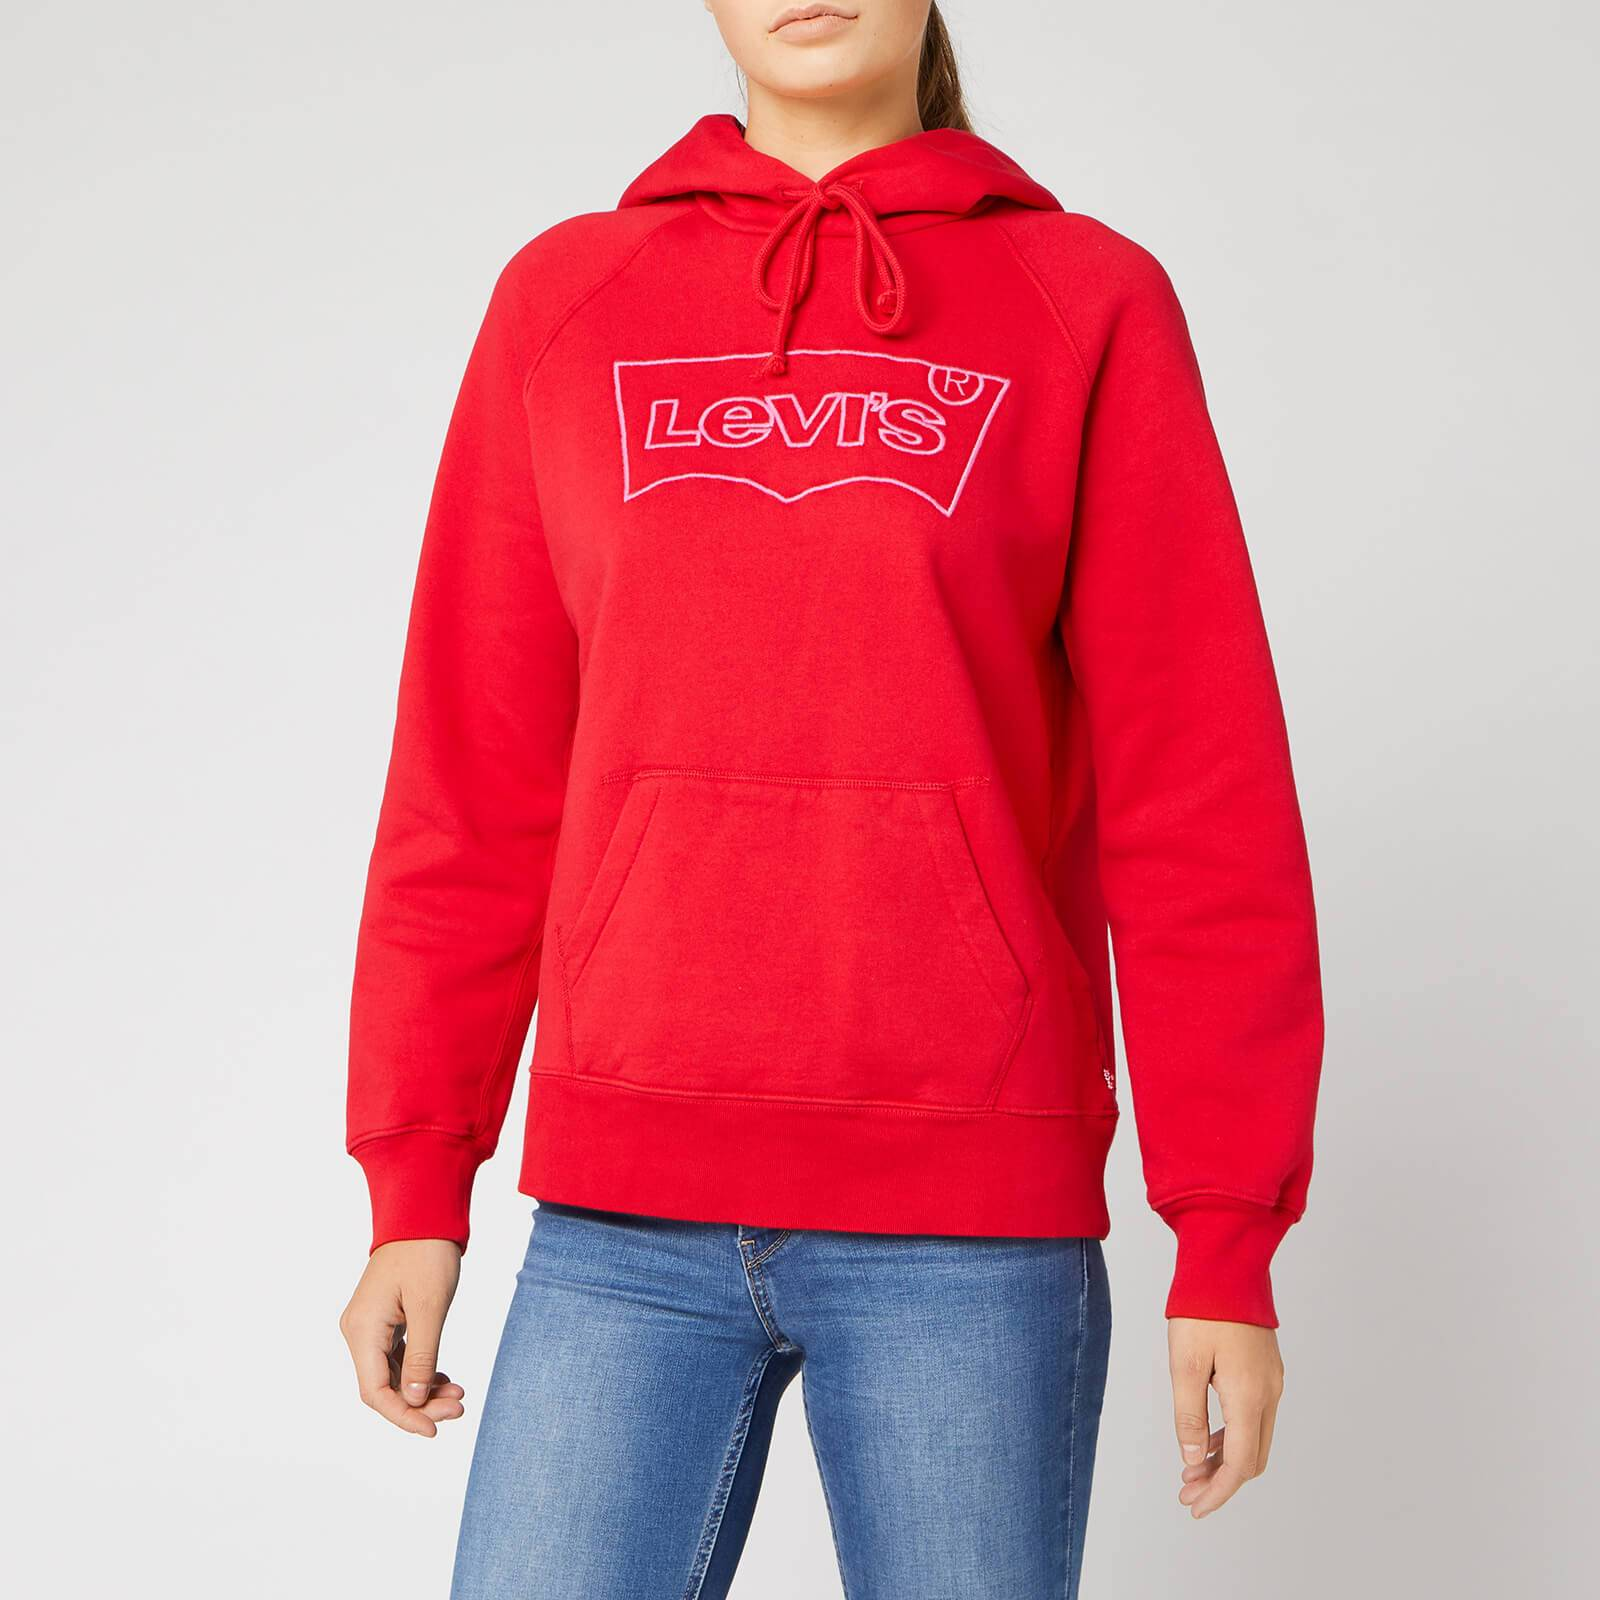 Levi's s Graphic Sport Hoodie - Hsmk Outline Hoodie Brilliant Red - XS